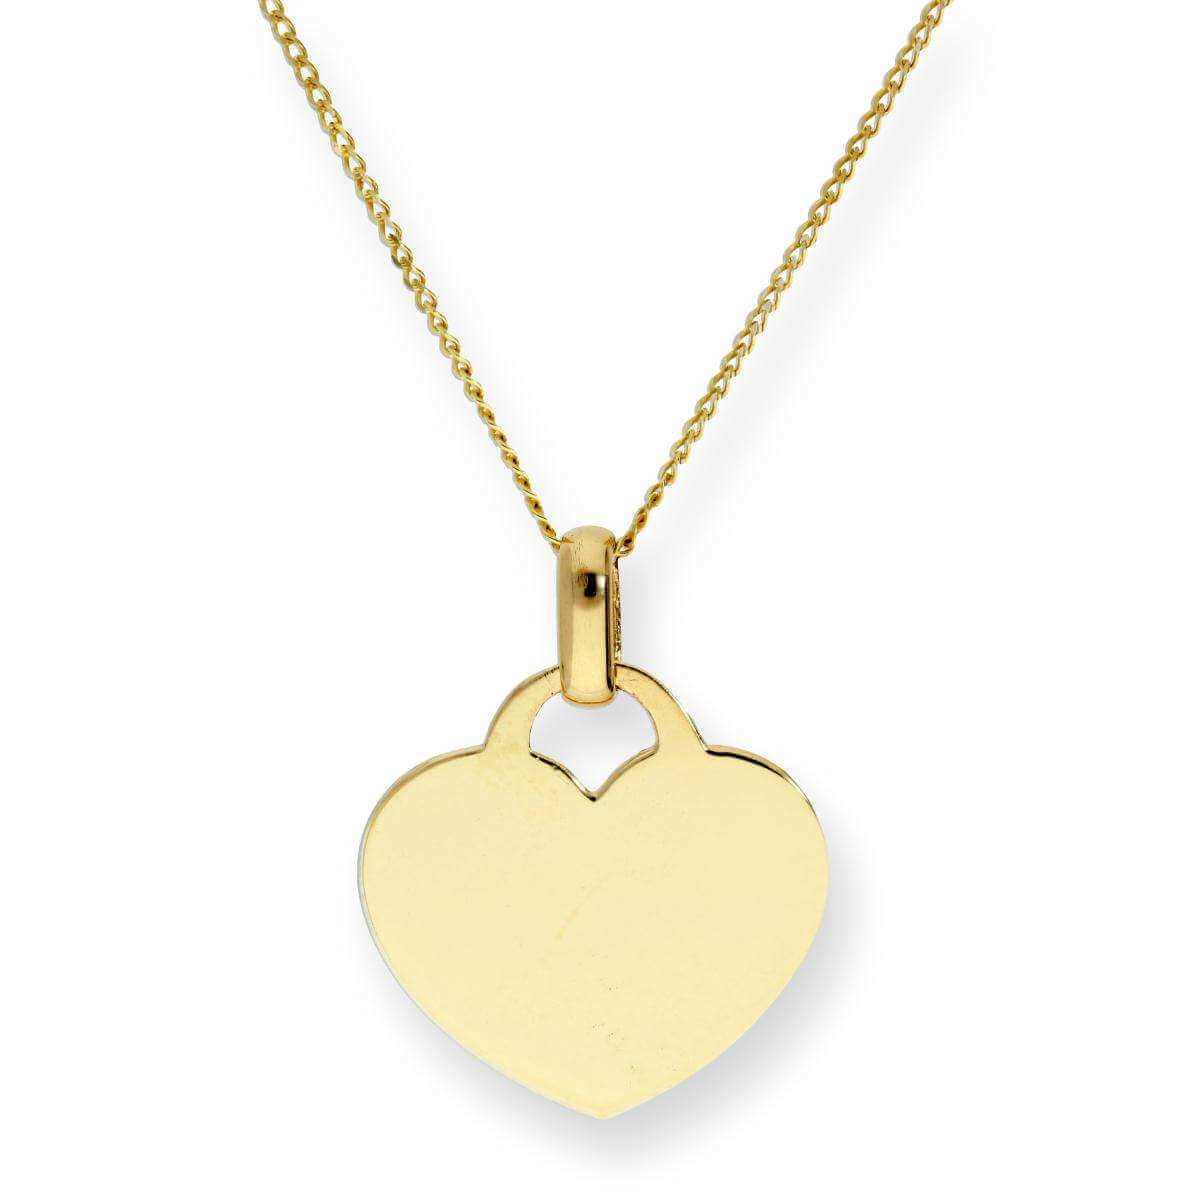 9ct Gold Engravable Heart Pendant Necklace 16 - 18 Inches